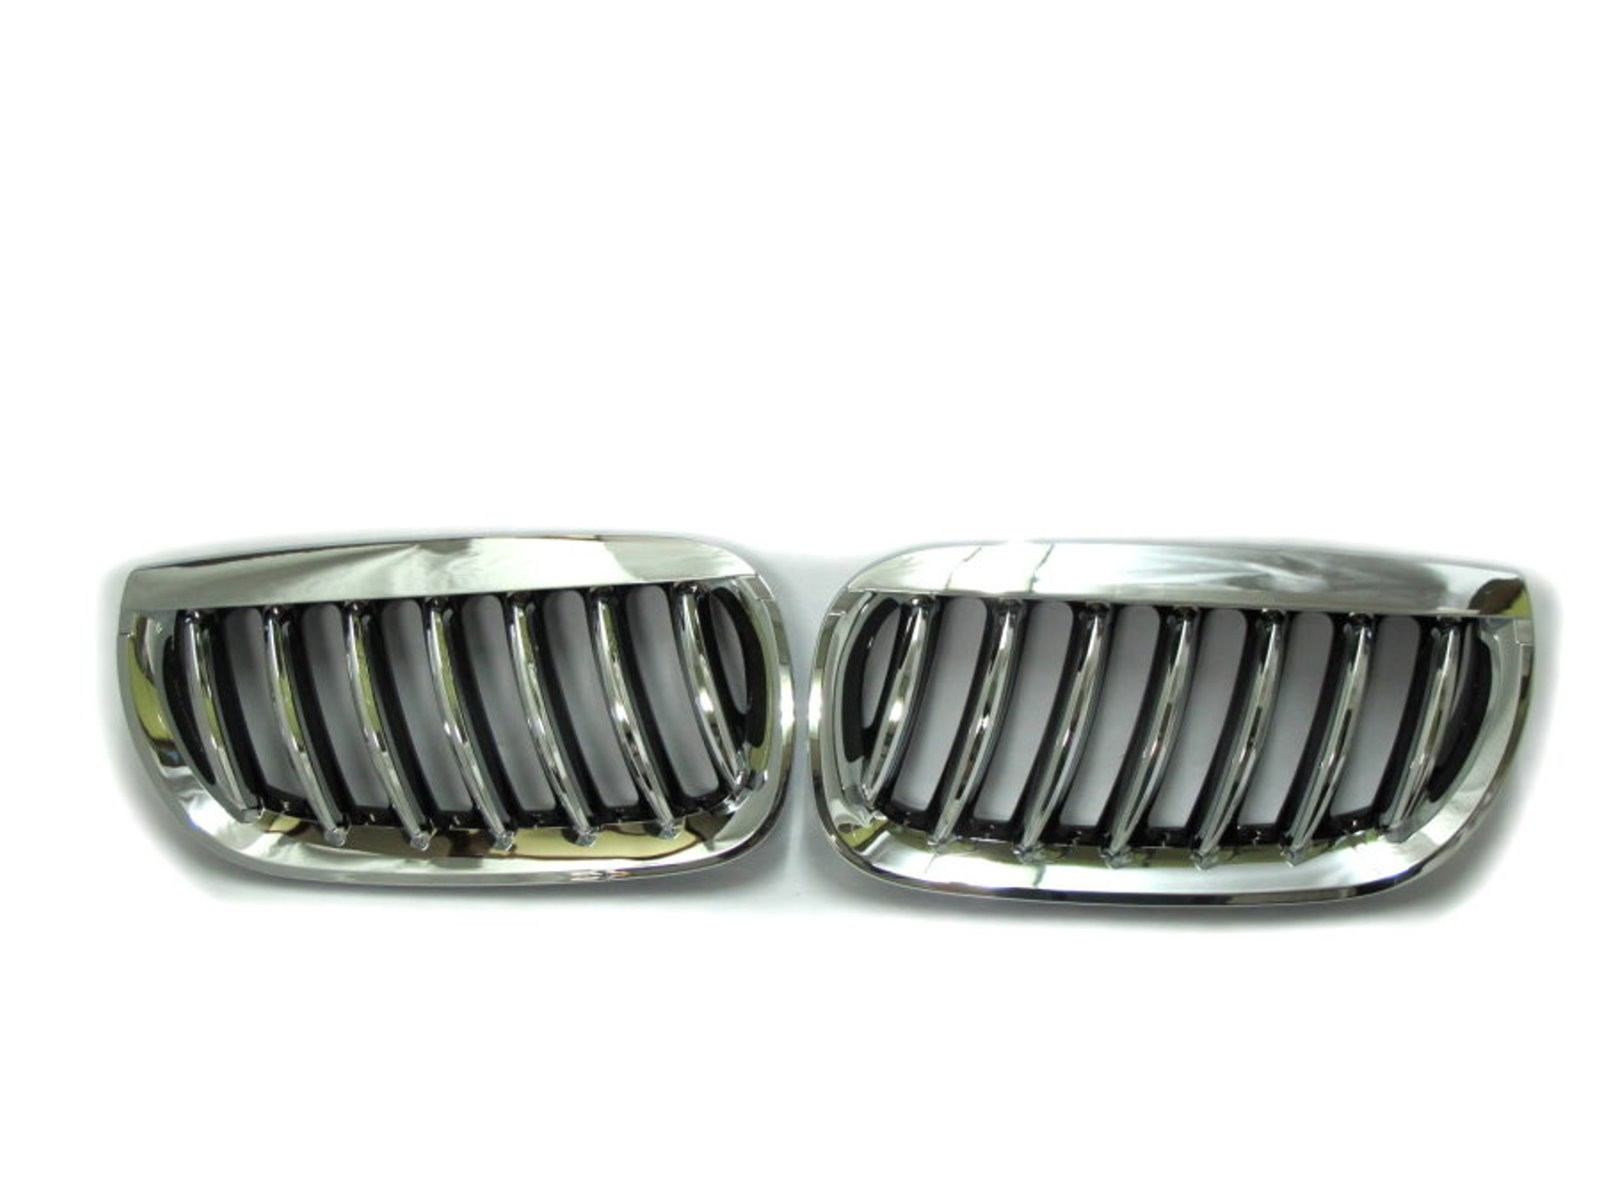 CrazyTheGod X3 E83 First generation 2003-2006 PRE-FACELIFT Wagon 5D M6Look GRILLE/GRILL Chrome/Black for BMW